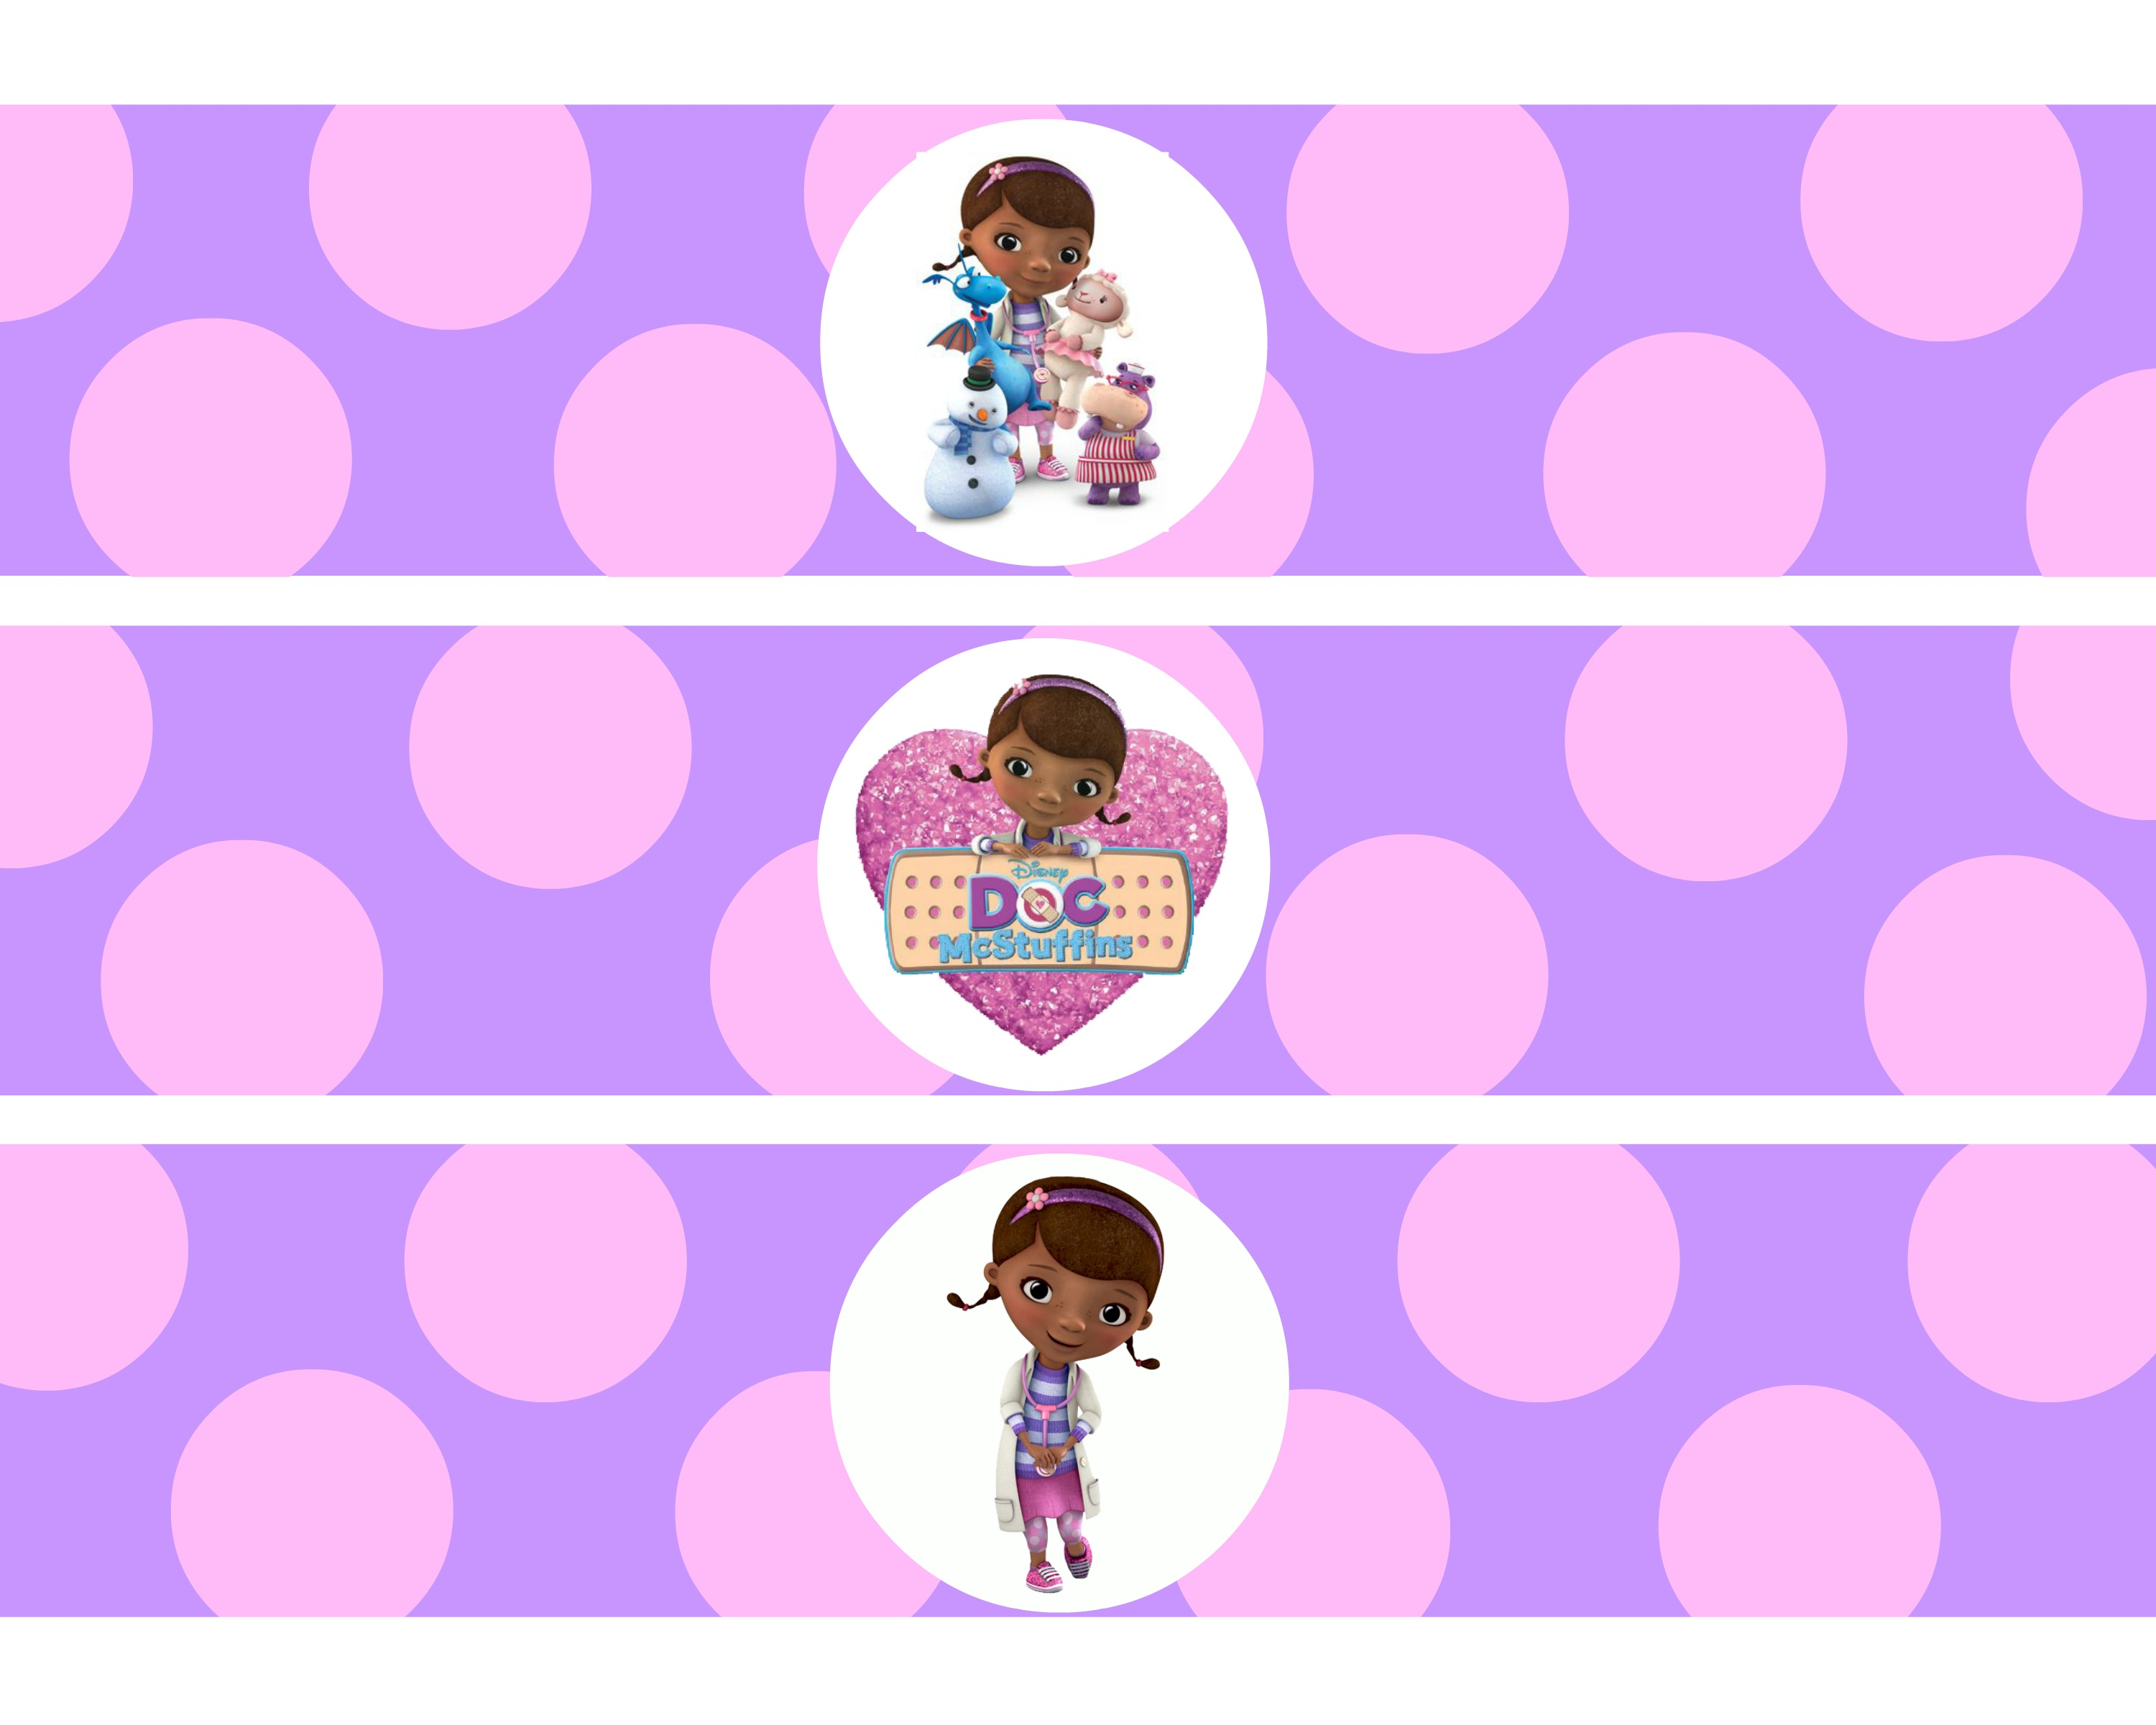 Doc mcstuffins printable clipart graphic freeuse 17 Best images about Doc Mcstuffins Printables (Home Edition on ... graphic freeuse